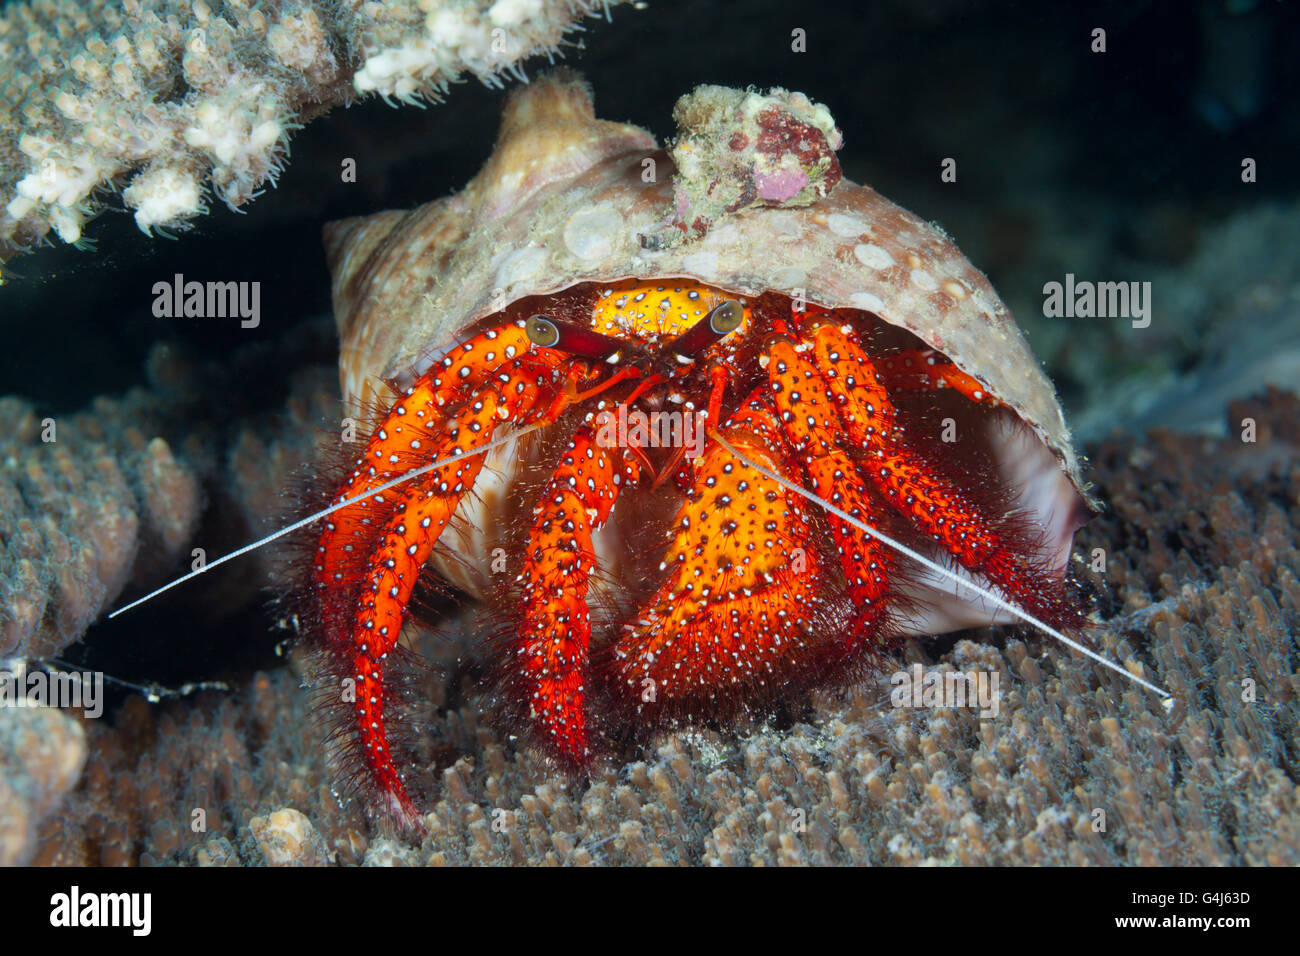 Red Hermit Crab, Dardanus megistos, Ambon, Moluccas, Indonesia - Stock Image